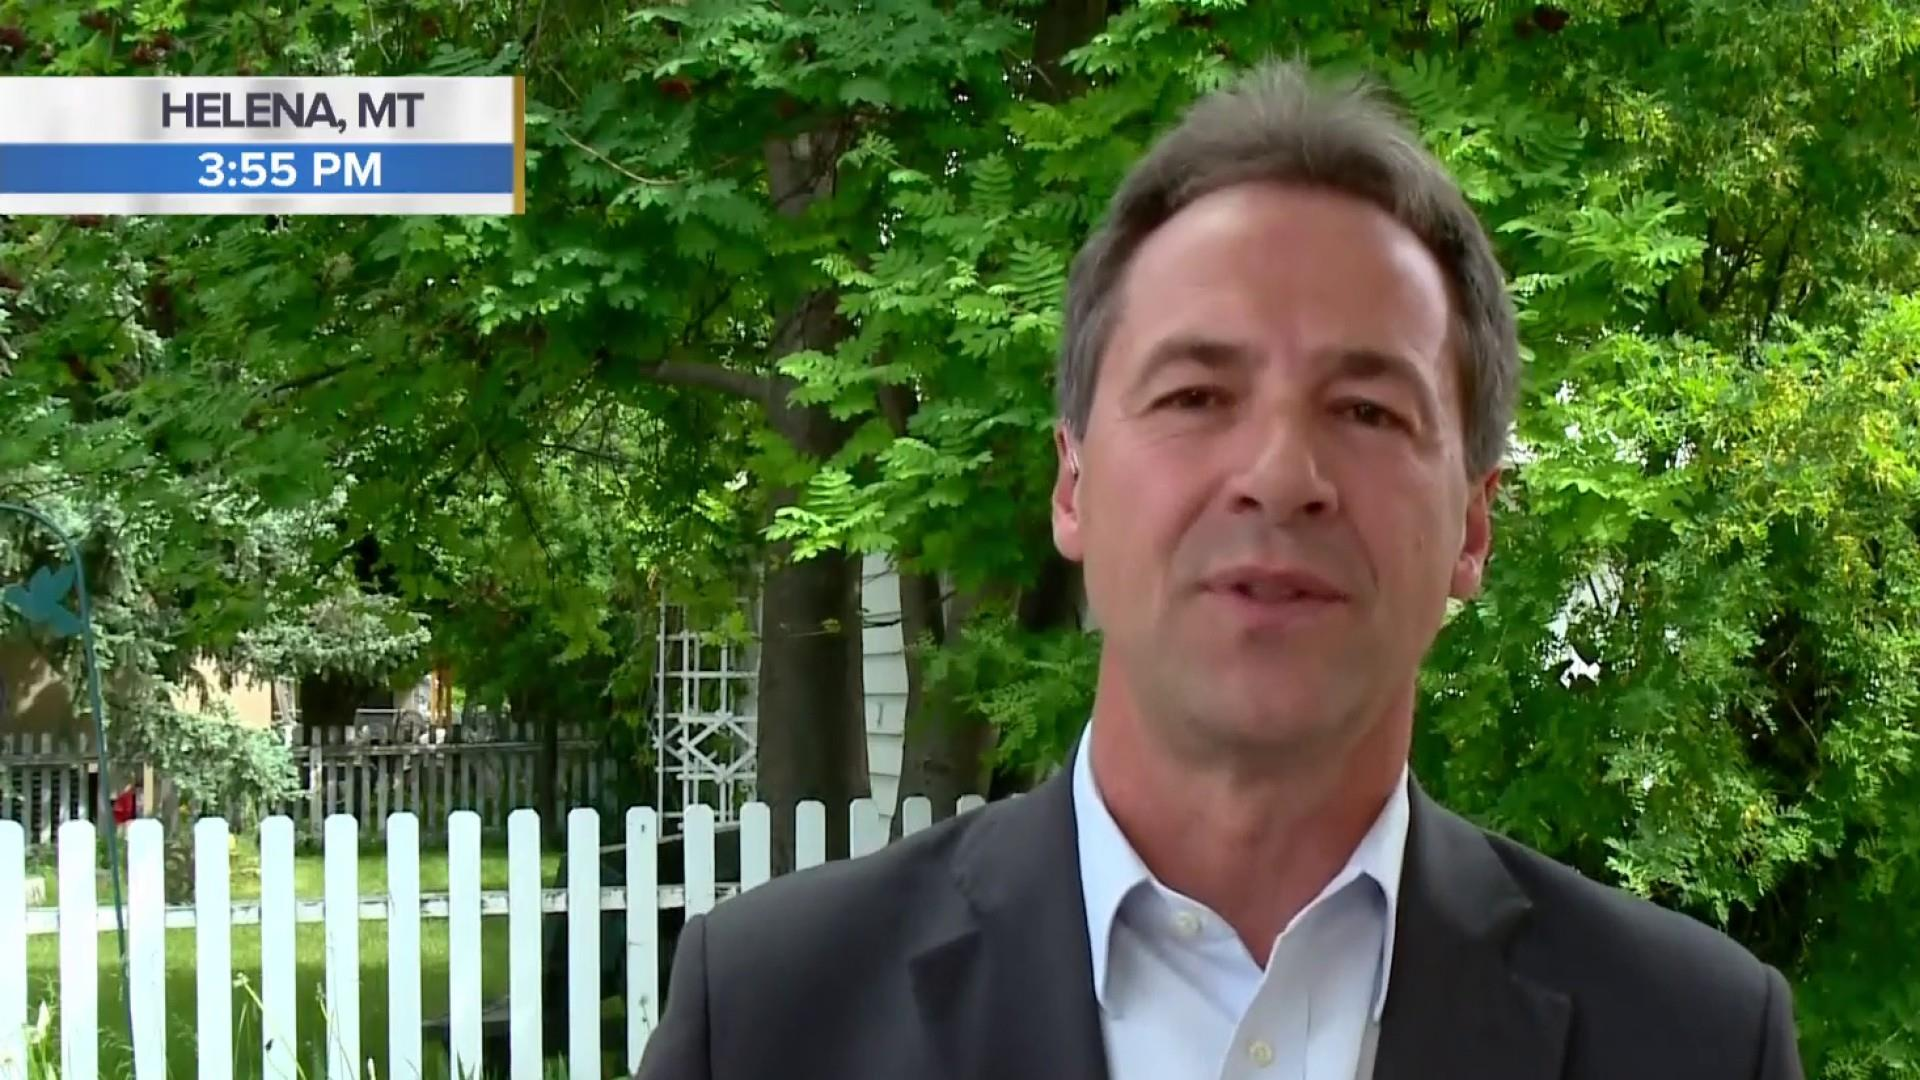 Full Bullock: 'I'm disappointed with the DNC' after not being chosen for first debate